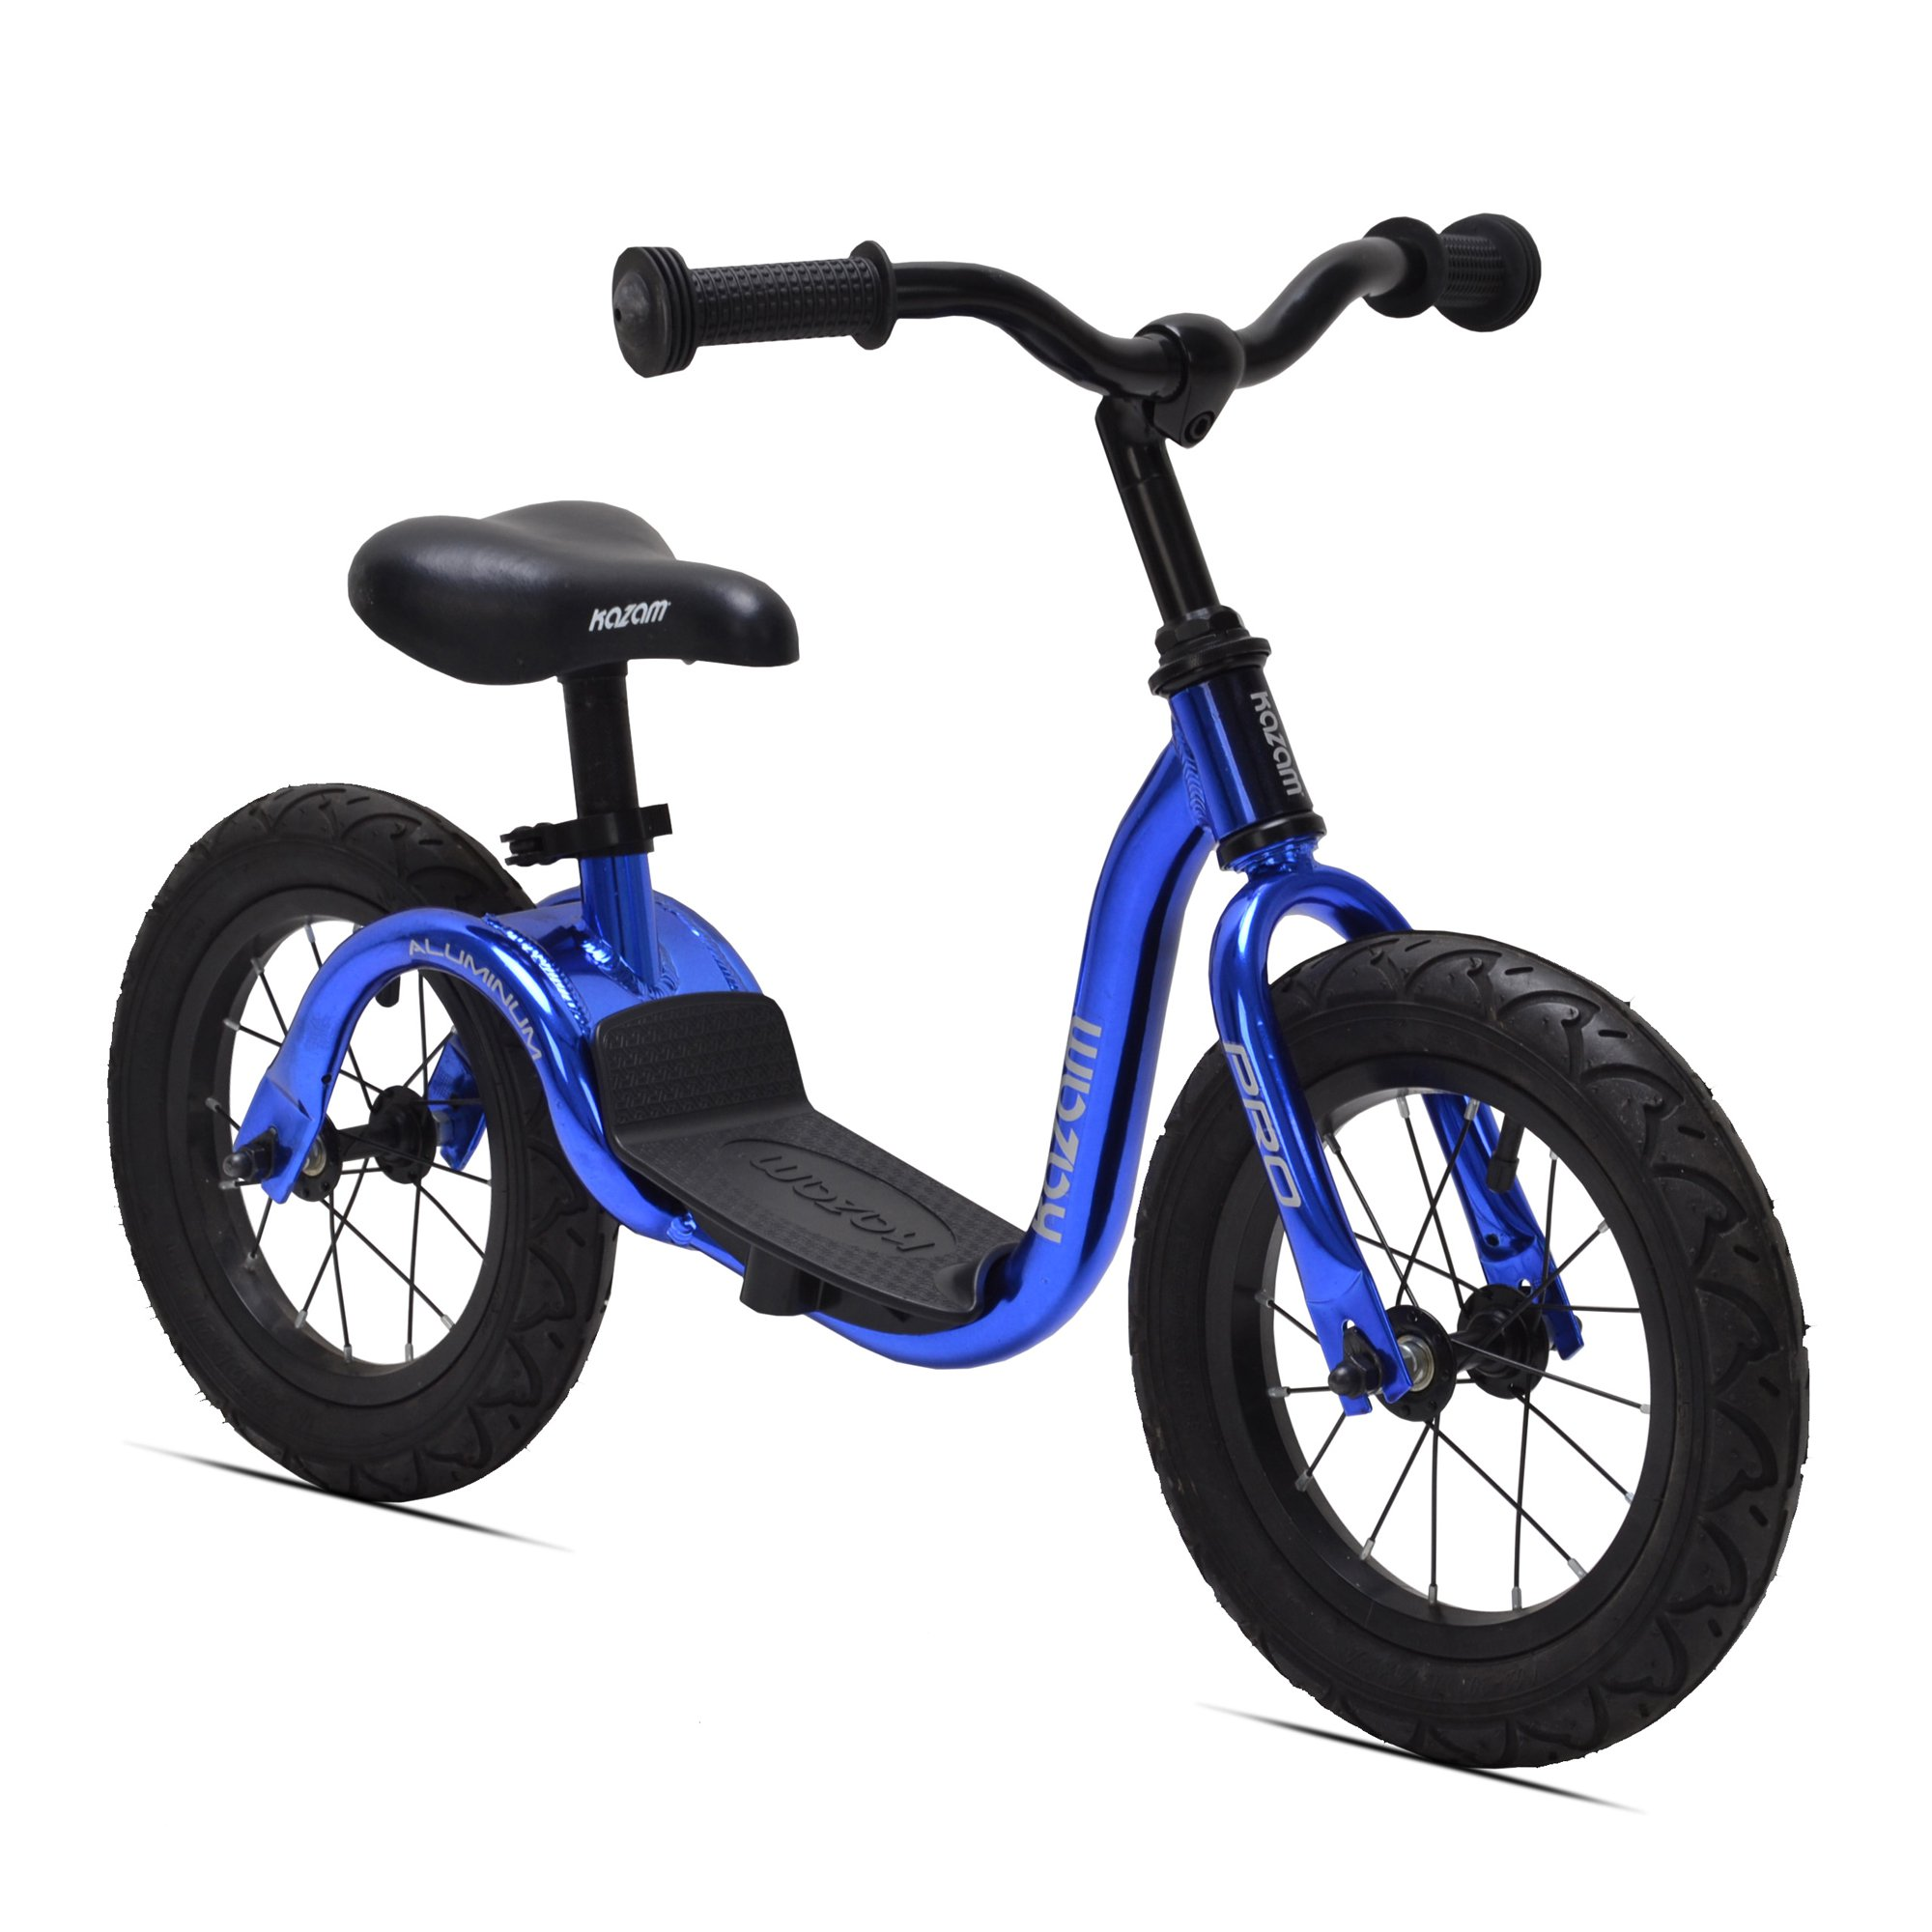 KaZAM Bikes Blue Pro Aluminum Kids No Pedal Learning Adjustable Balance Bike